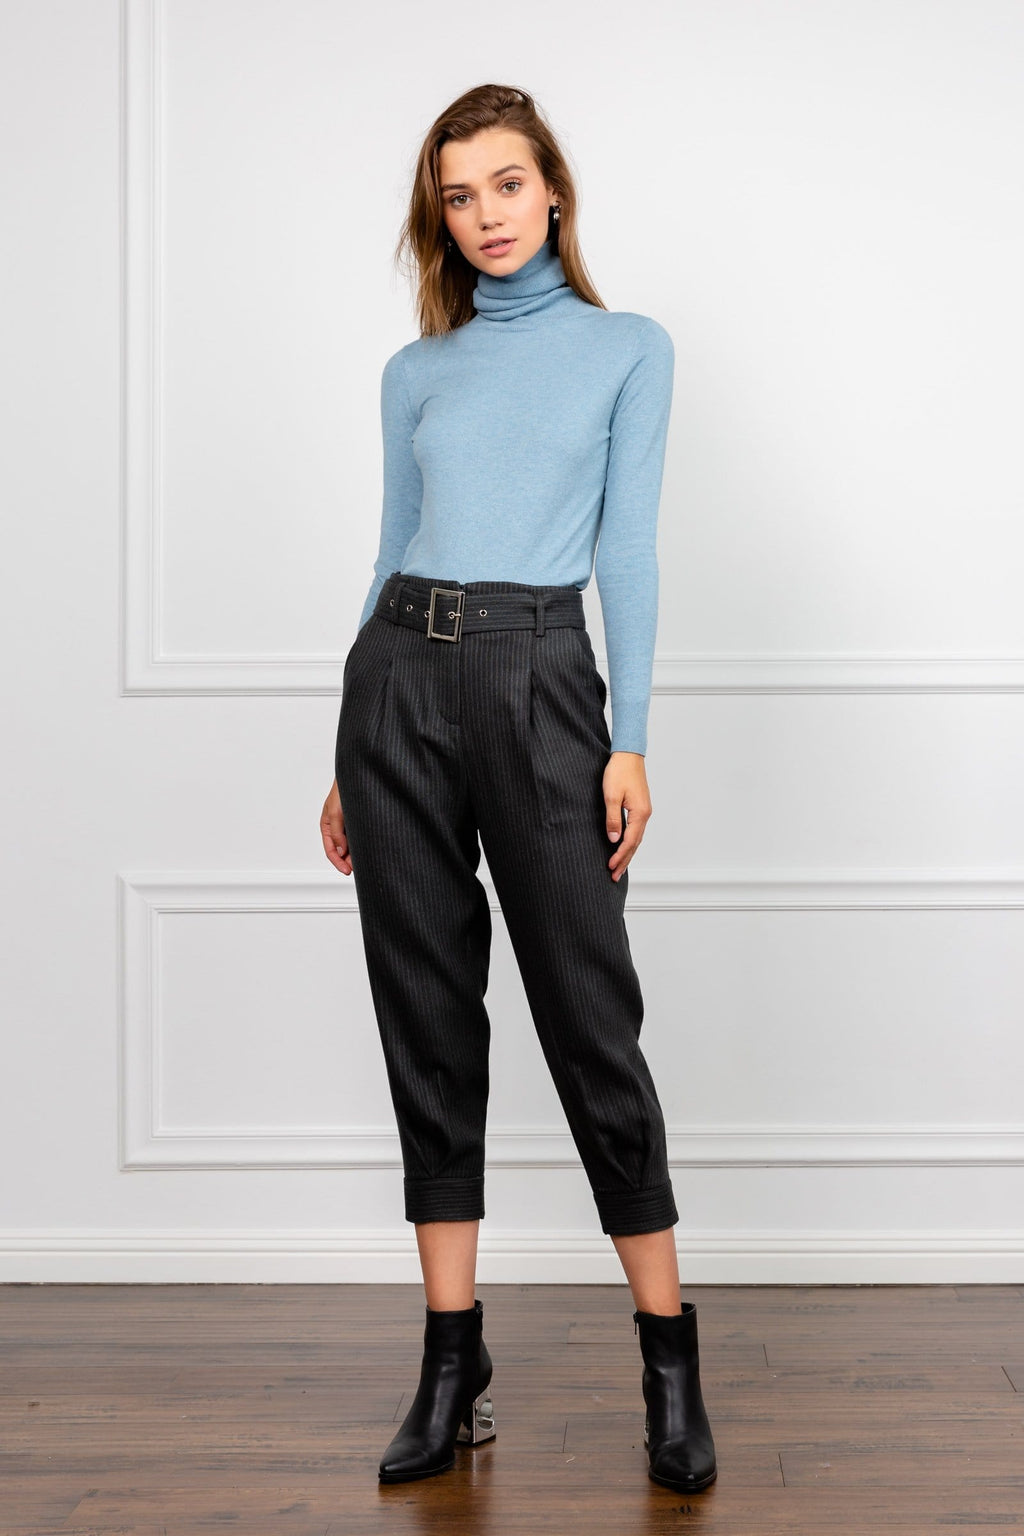 Dark Grey Piunstriped Belted Ankle Cropped Pants | J.ING Women's Workwear